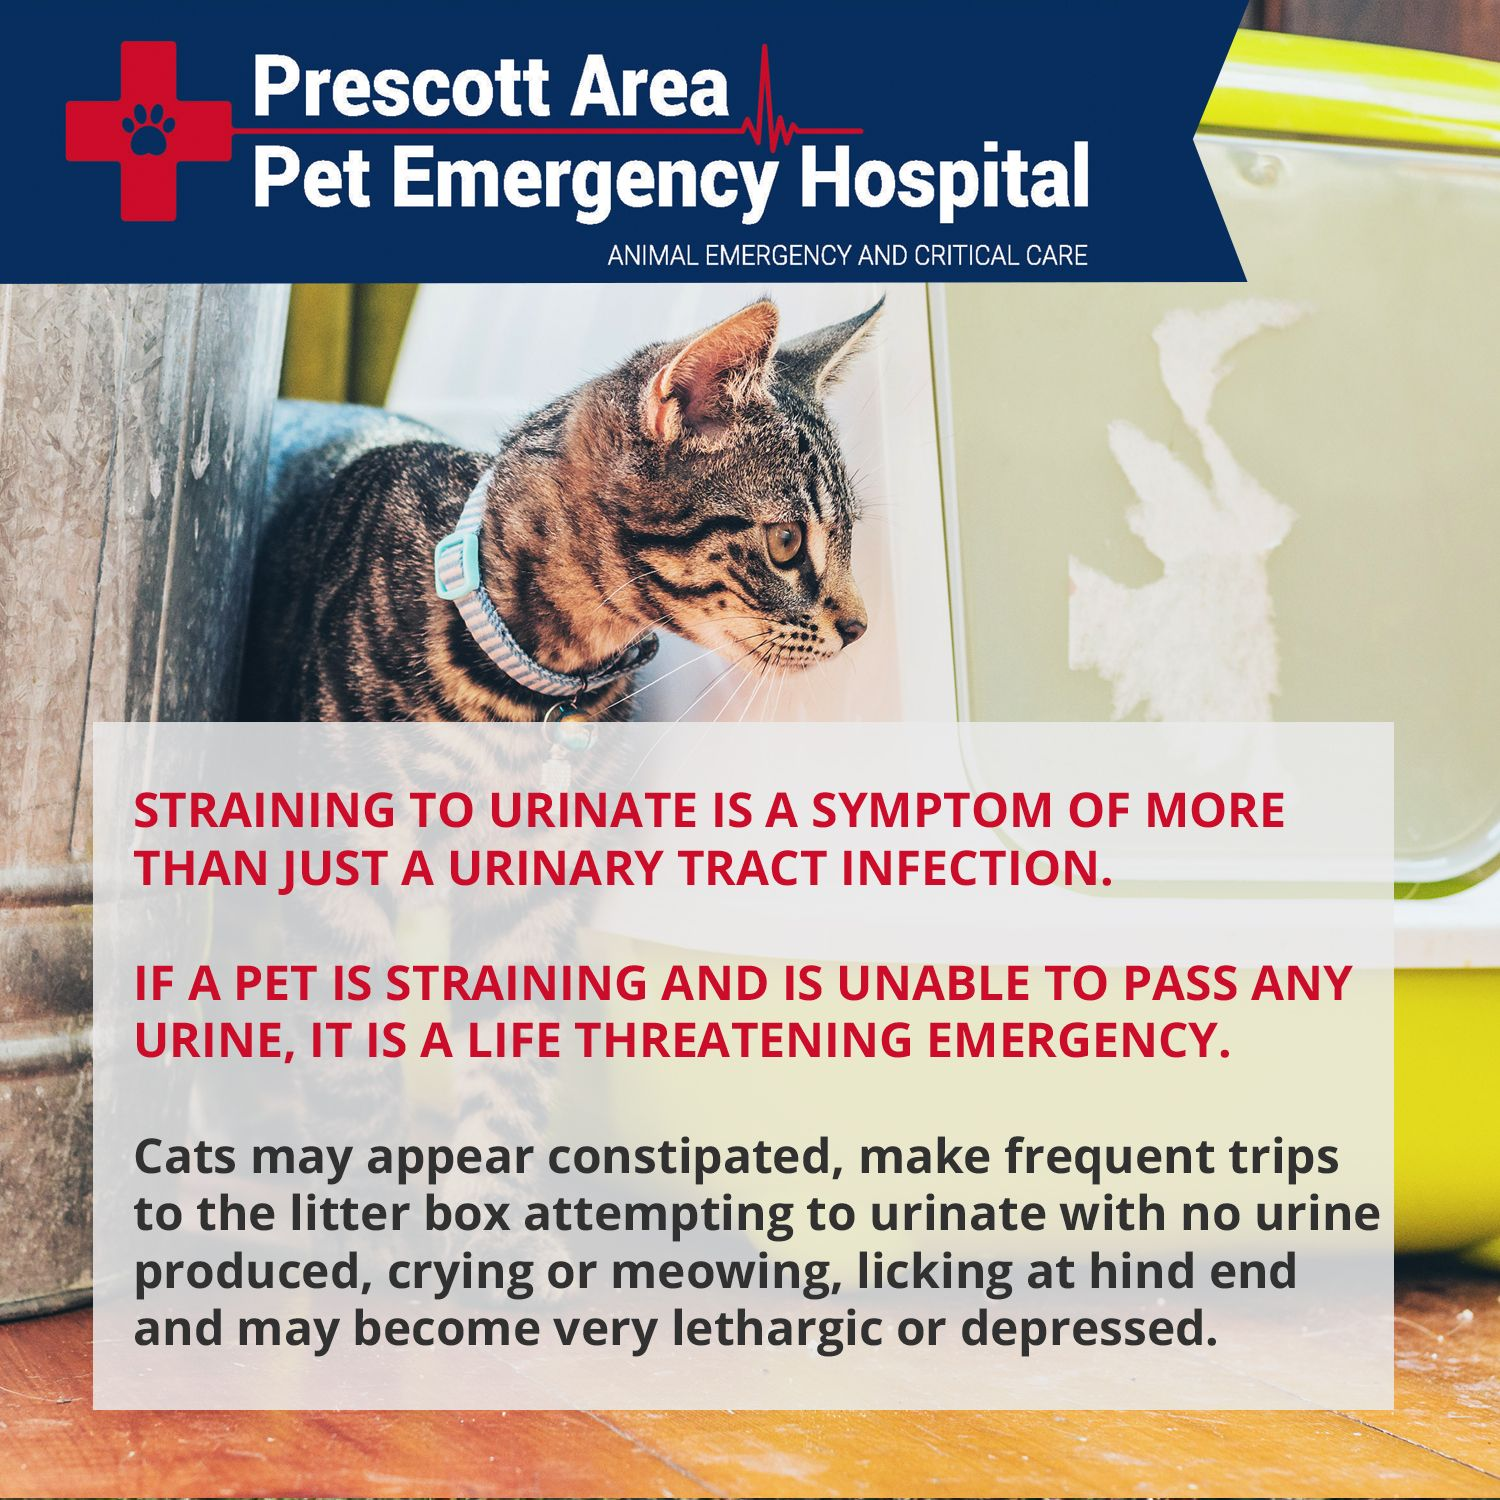 Straining to urinate is a symptom of more than just a UTI